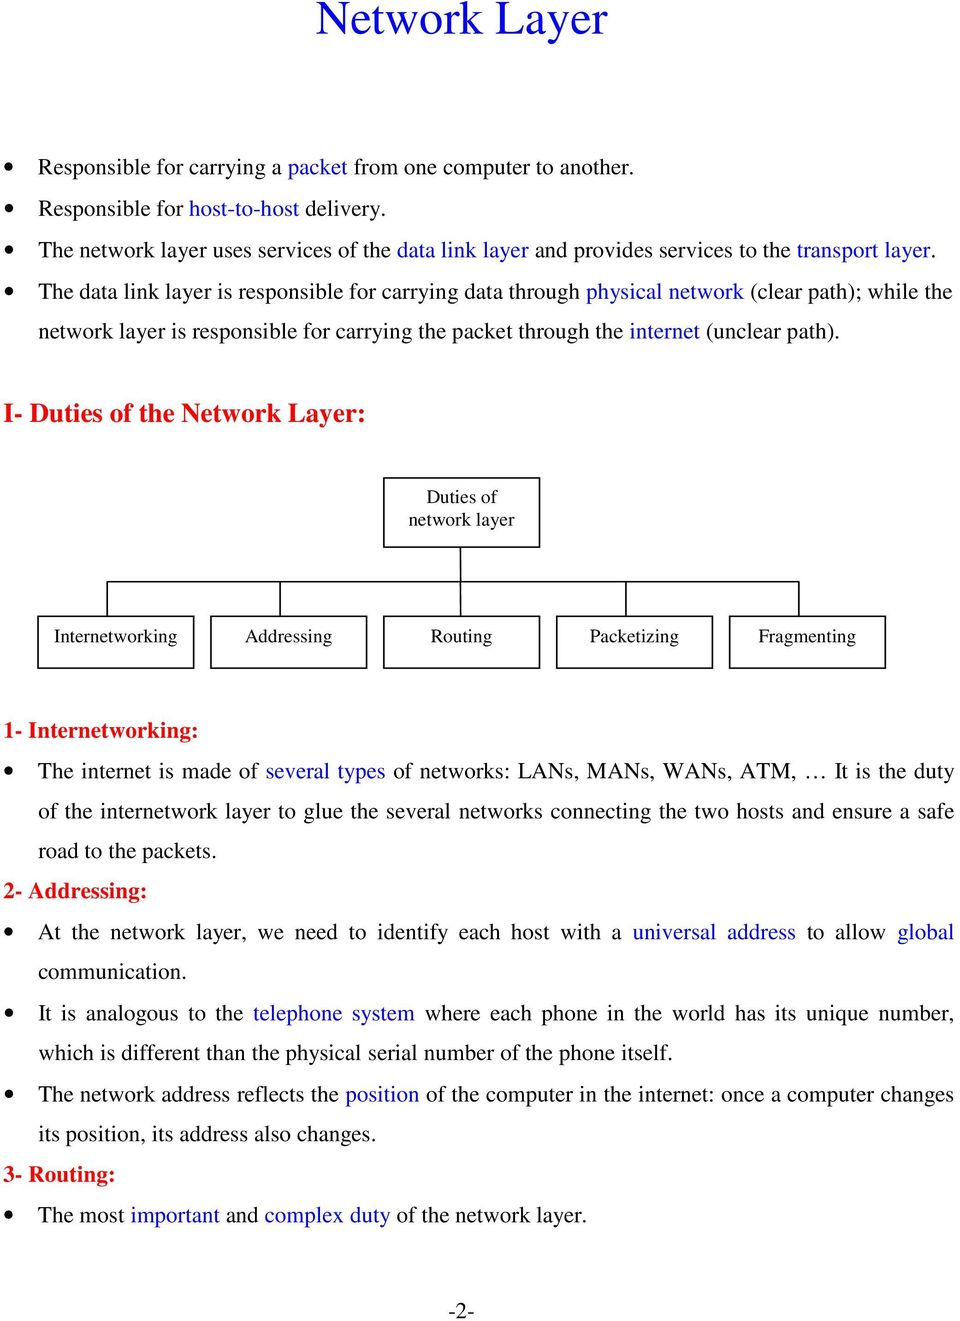 The data link layer is responsible for carrying data through physical network (clear path); while the network layer is responsible for carrying the packet through the internet (unclear path).